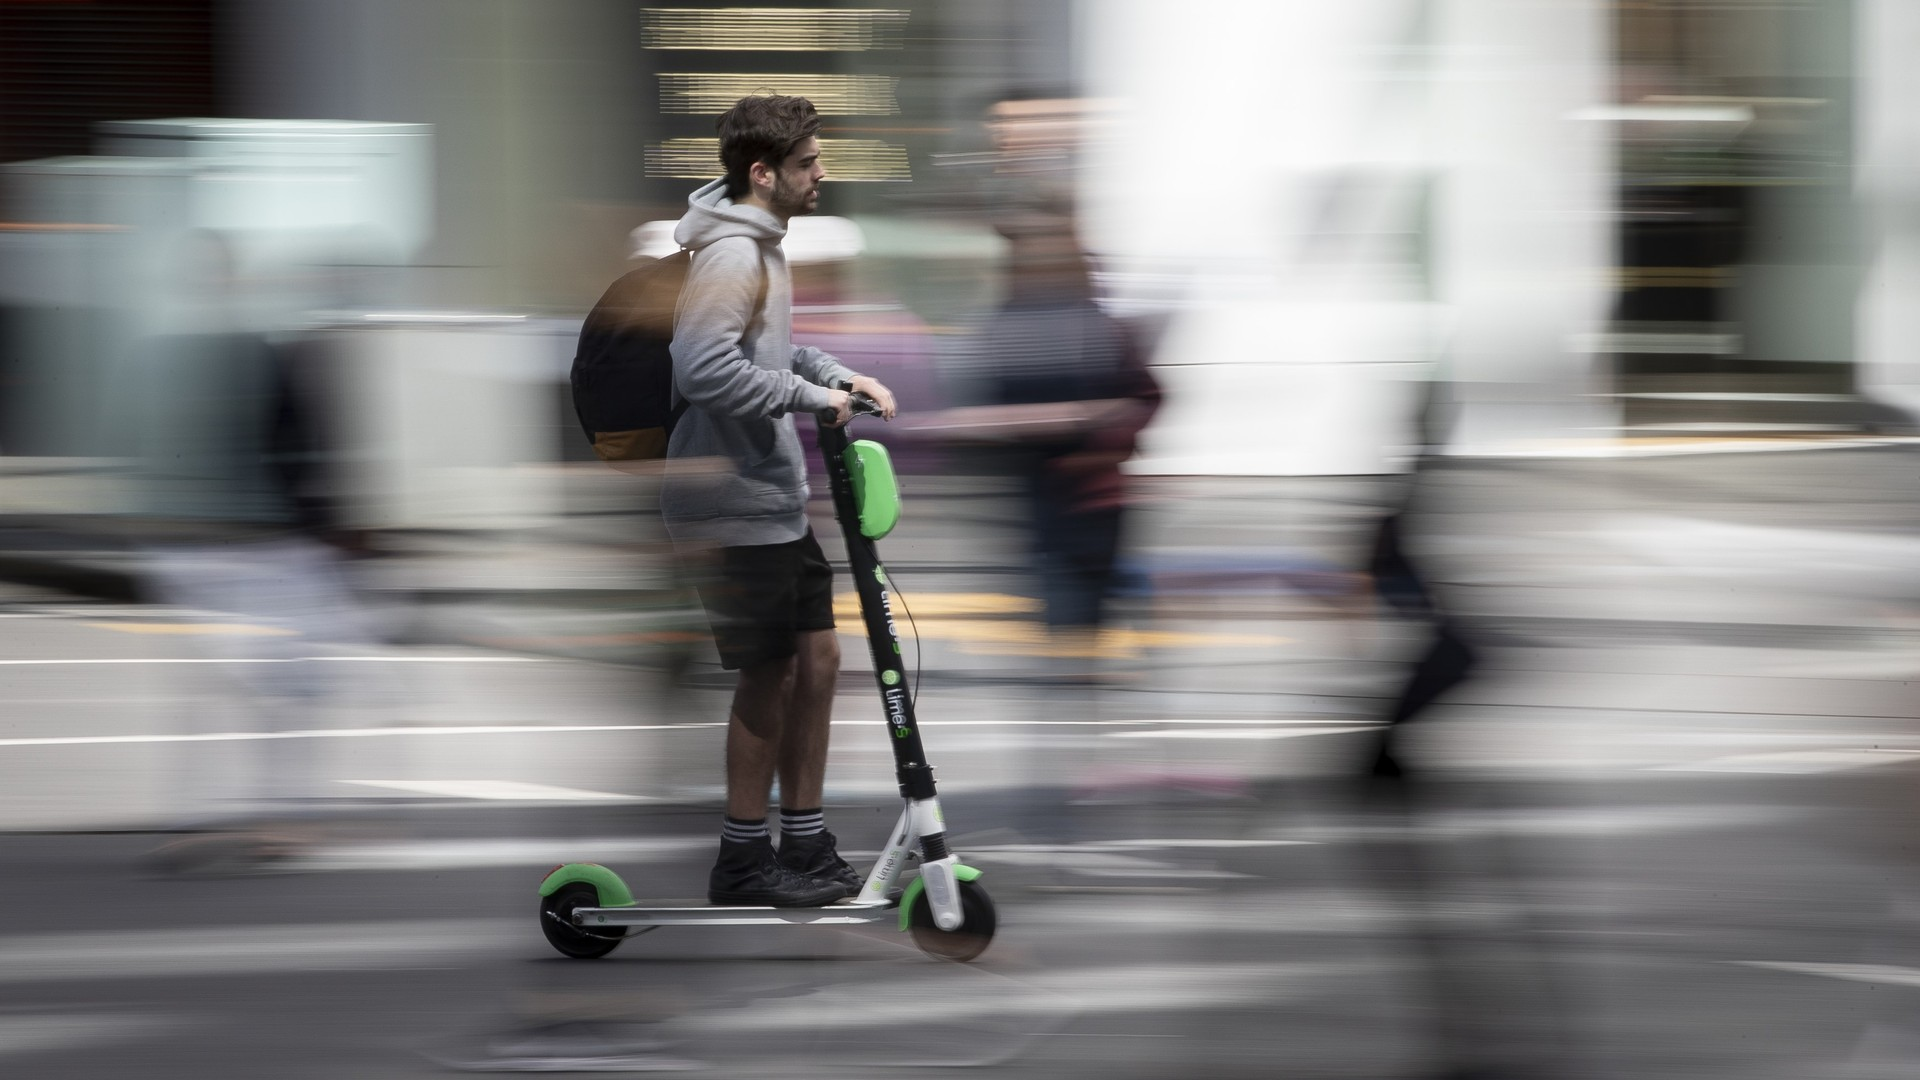 Don't 'drink and ride': Booze big factor in Auckland e-scooter injuries